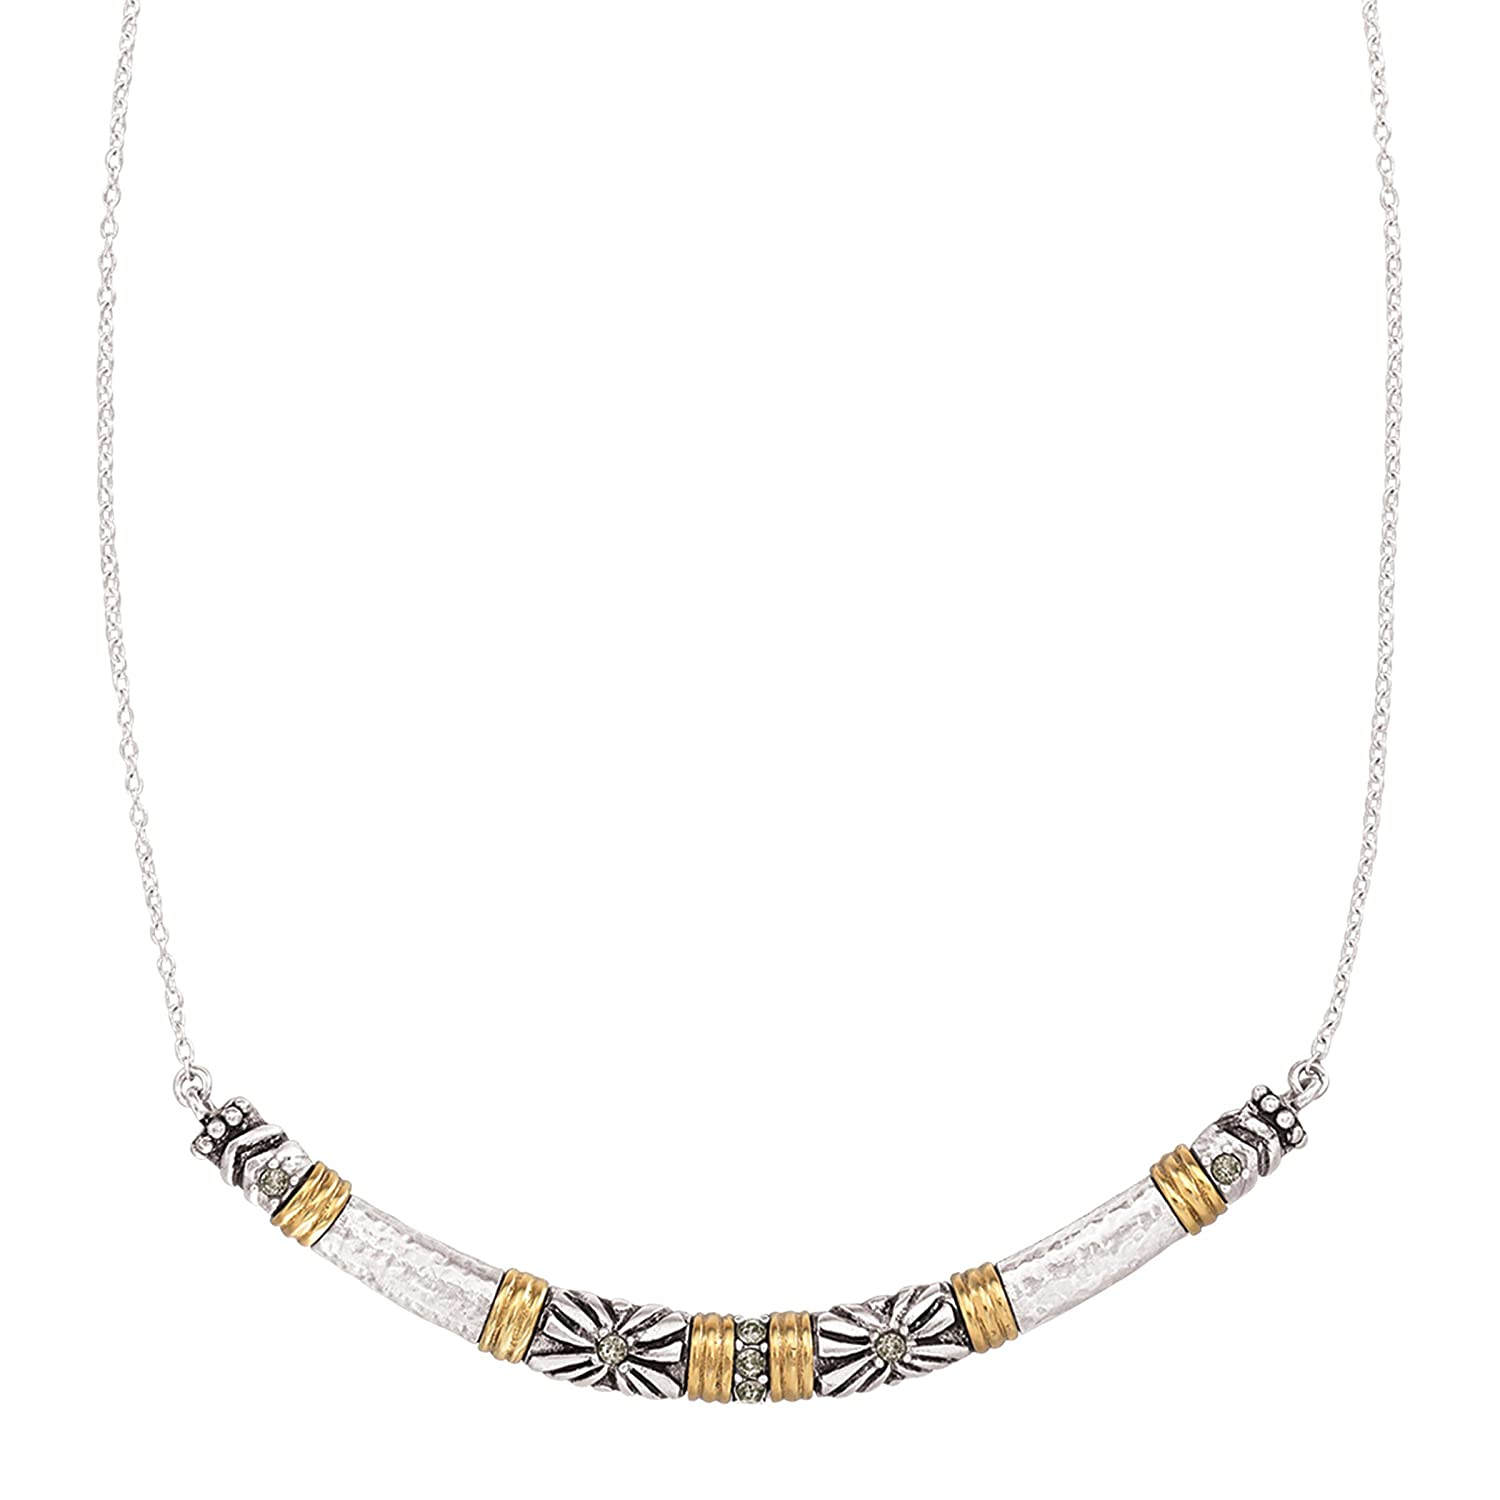 Silpada 'Canyon Dreams' Curved Bar Necklace with Swarovski Crystals in Sterling Silver & Brass